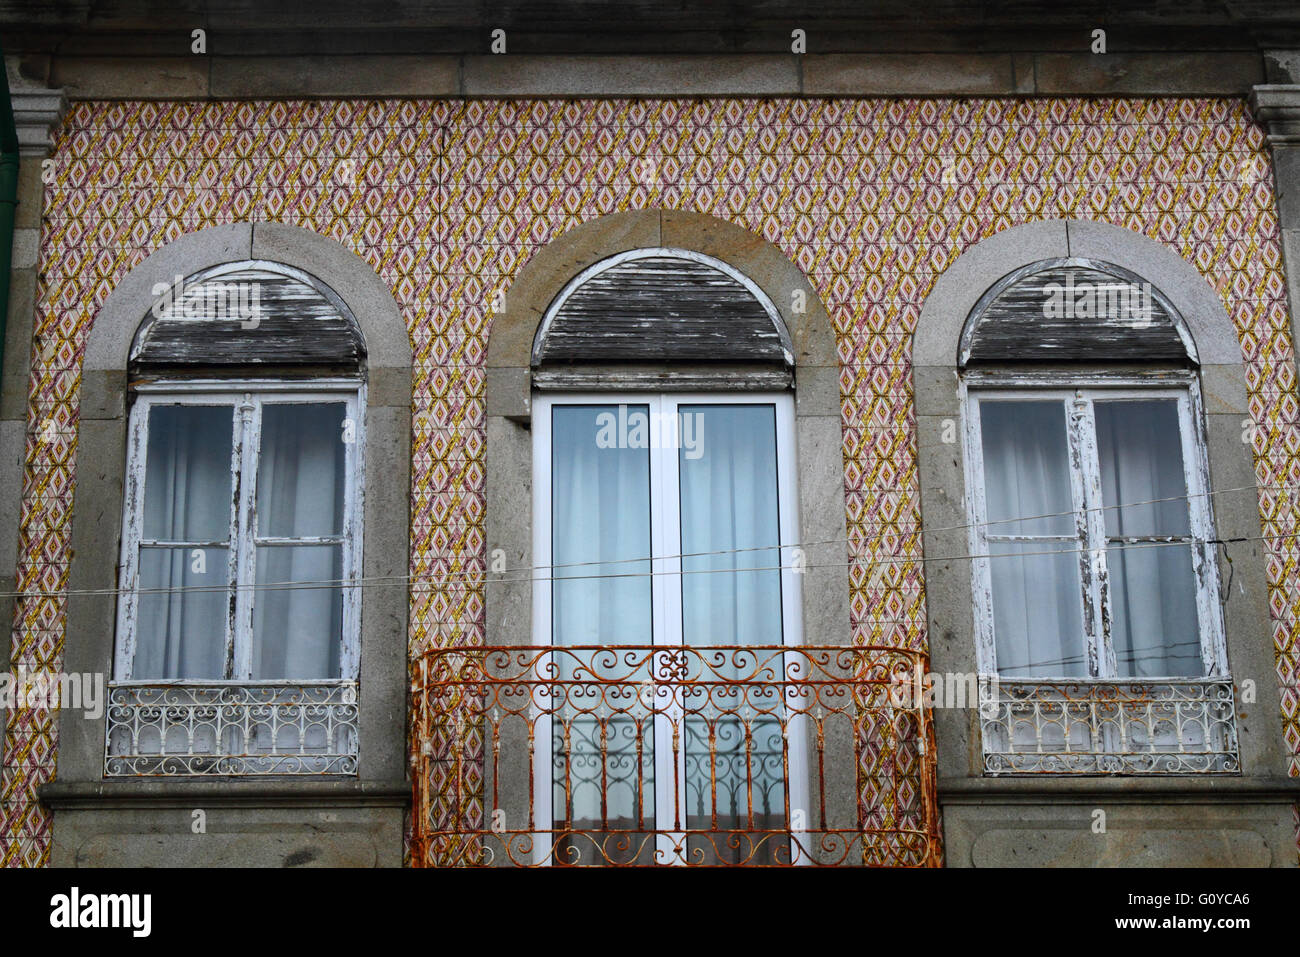 Detail of windows, balcony with new door and ceramic tiles on wall ...